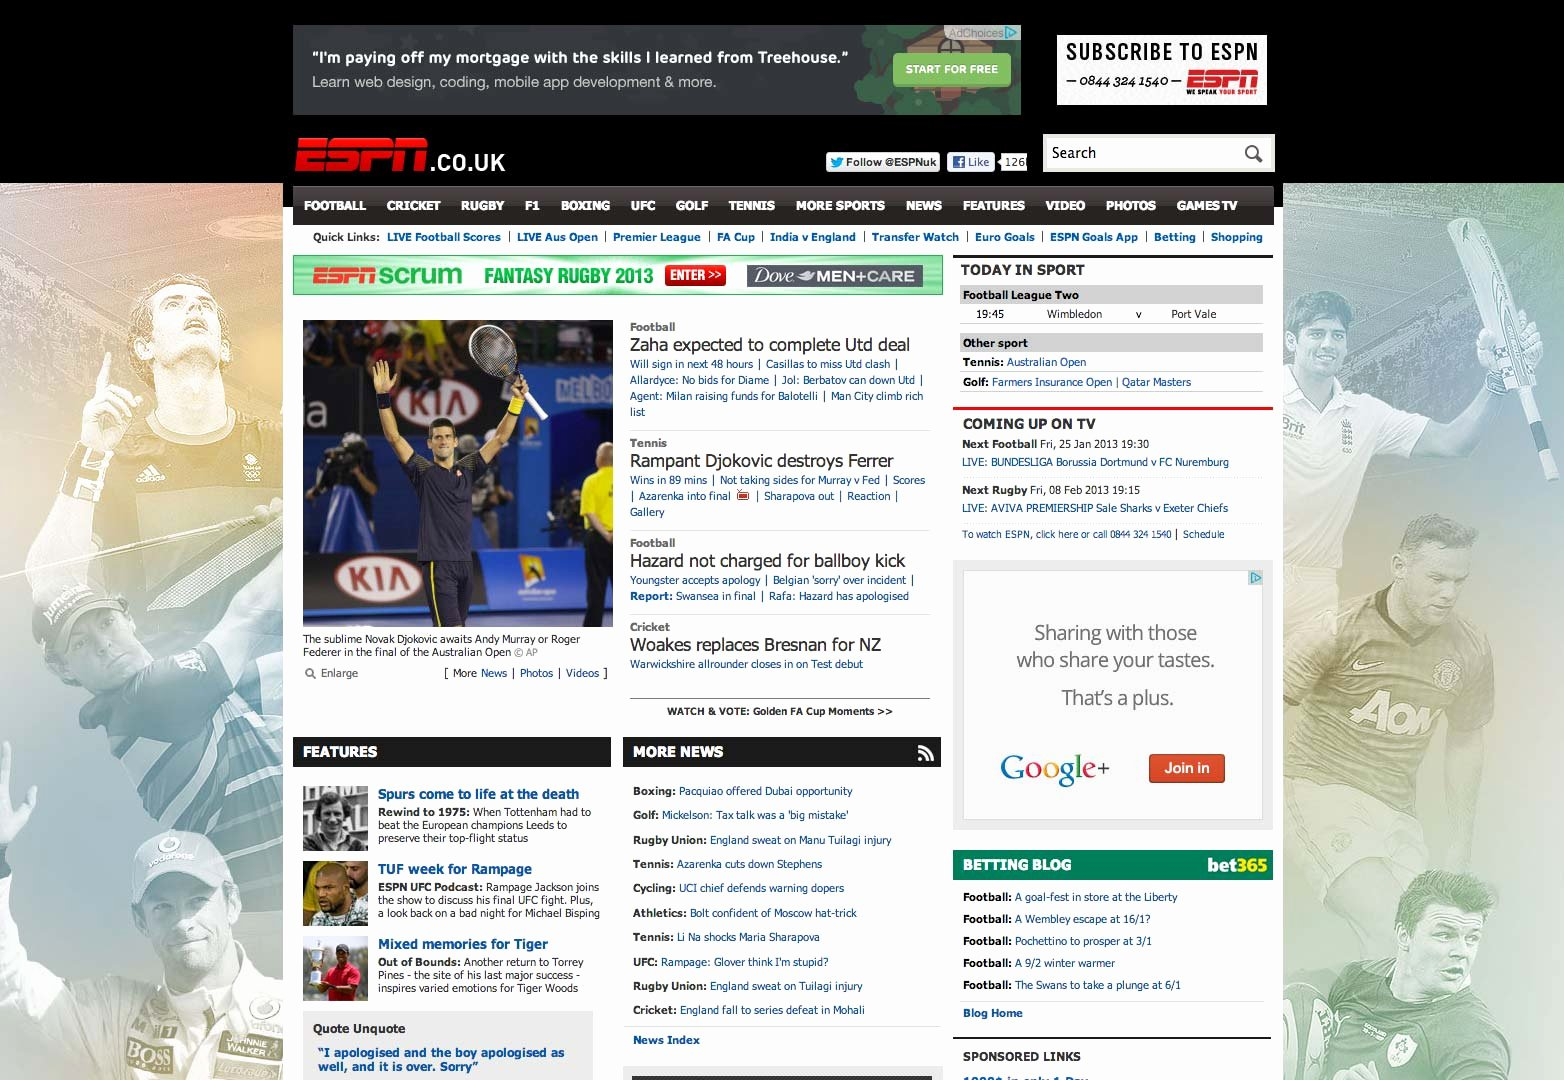 Sports Web Site Template Awesome 30 Successful Sports Websites